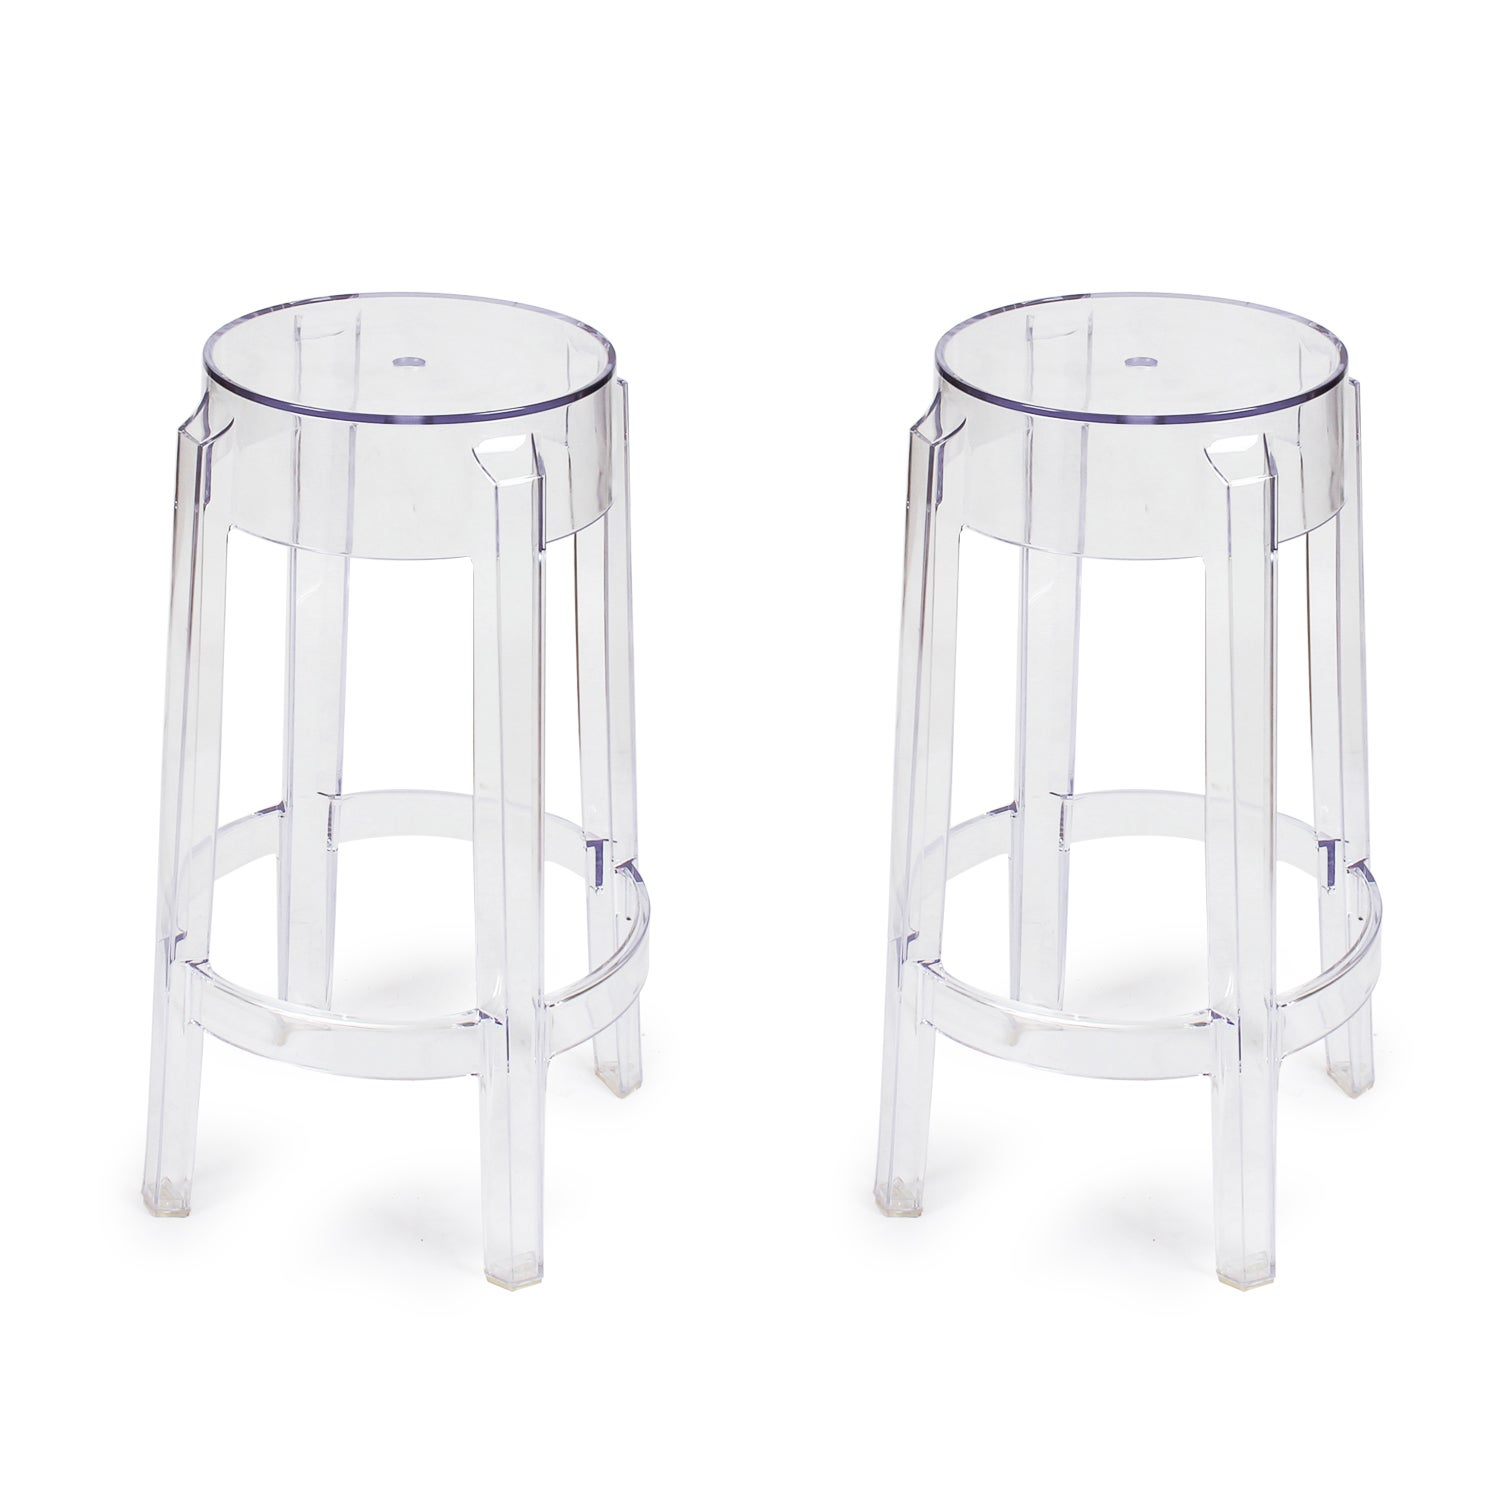 Adeco Crystal Dining Chair Set of 2 (clear) (Plastic)